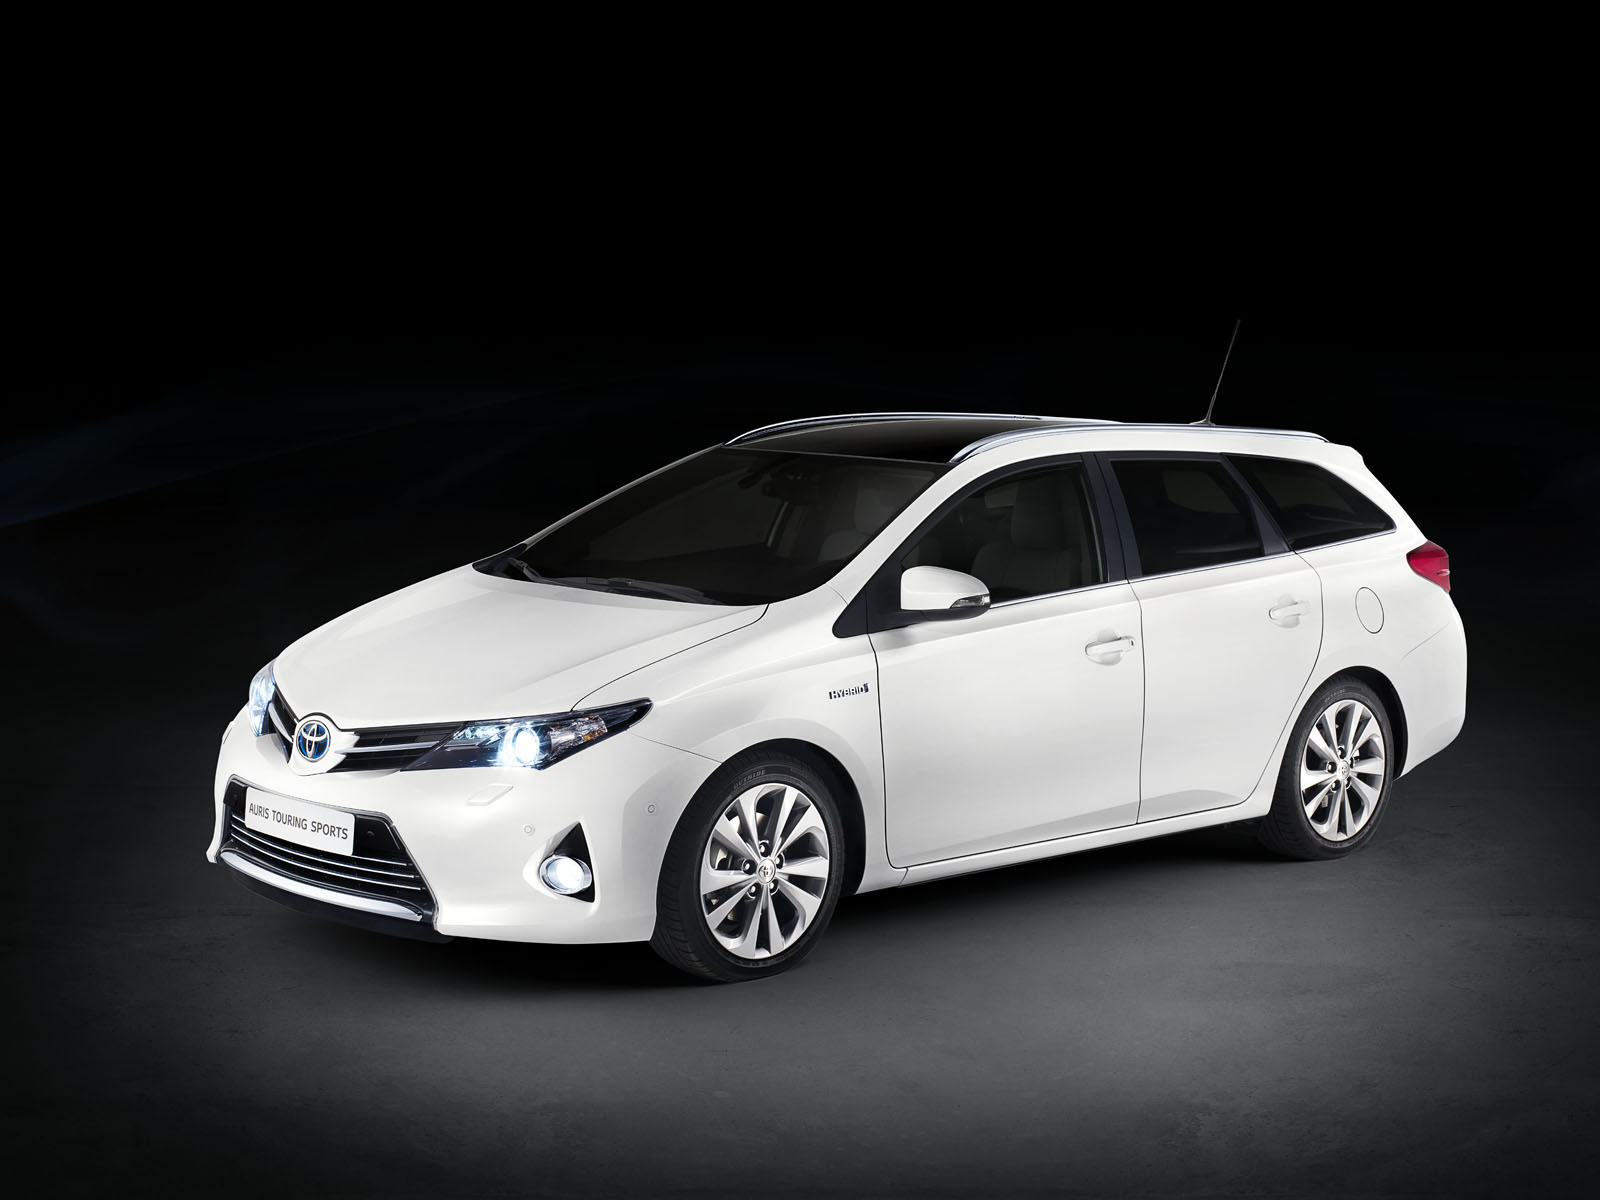 TOYOTA Auris Touring Photo Gallery Wallpaper Download